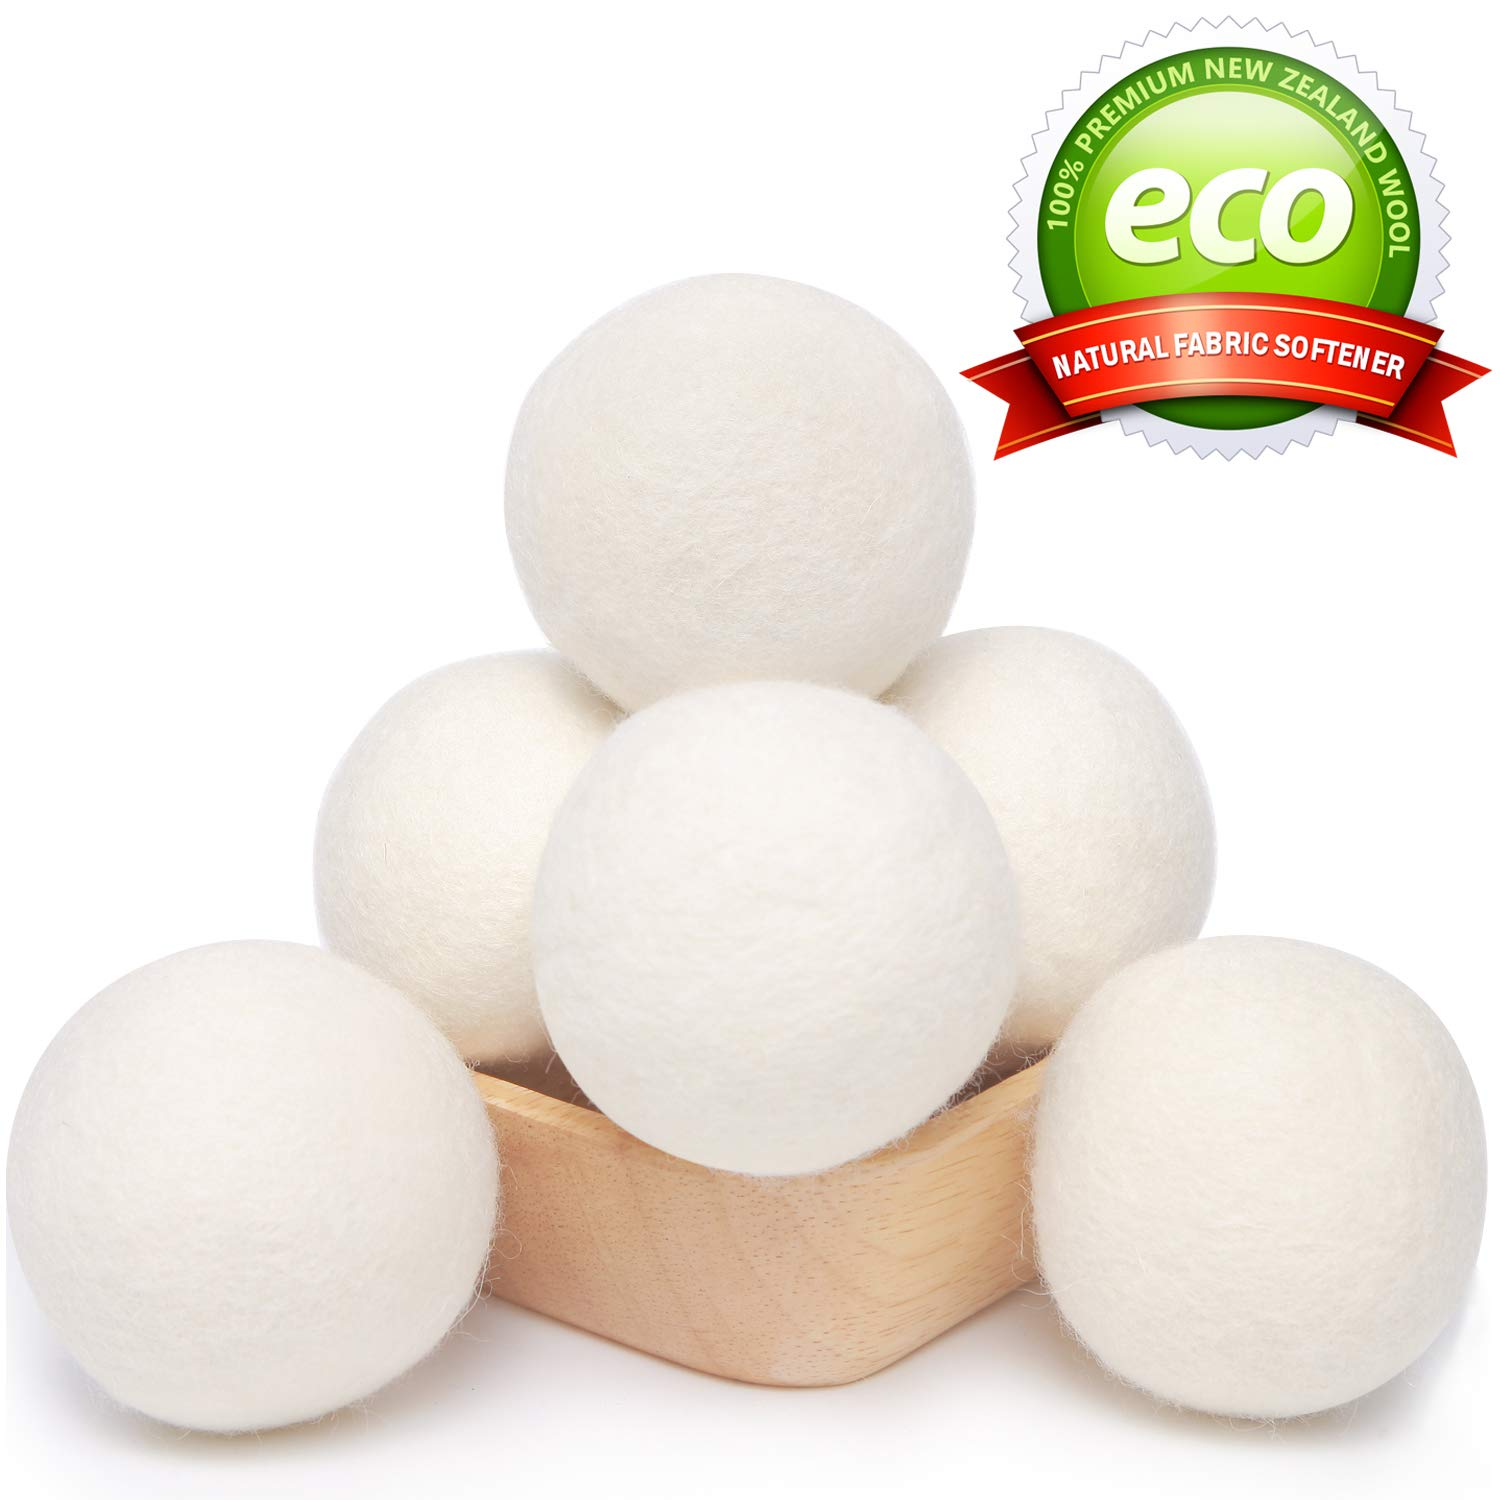 Wool Dryer Balls Laundry XL 6-Pack 100% Organic New Zealand Wool, Handmade Eco Dryer Balls Reusable Natural Fabric Softener, Dryer Sheets Alternative, Reducing Wrinkles, Hypoallergenic, Chemical Free